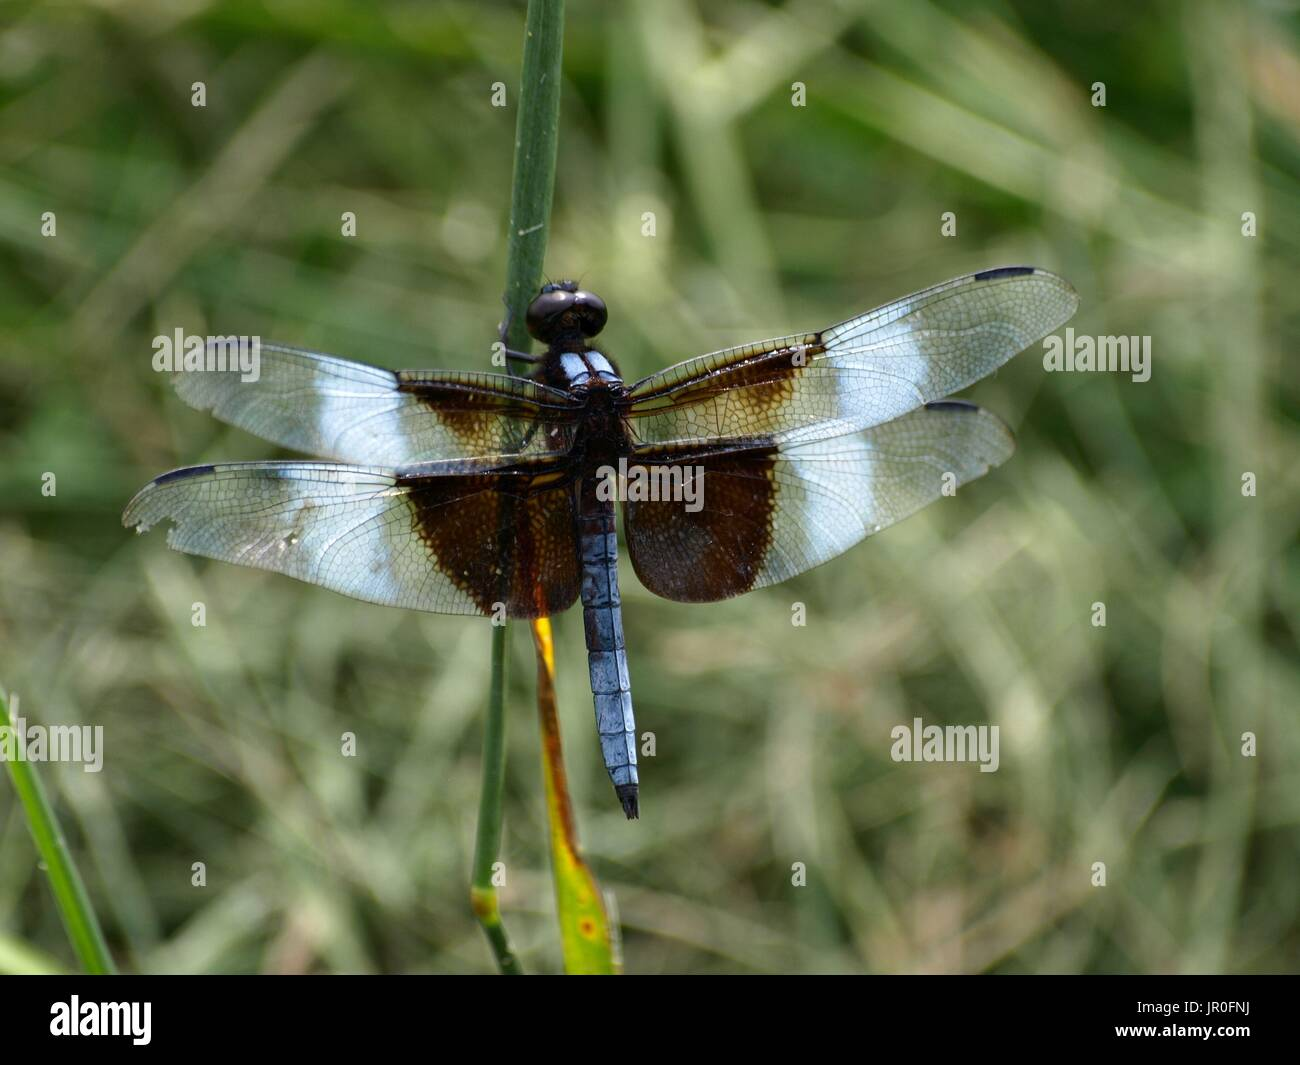 Dragonfly hugging green stalk - Stock Image